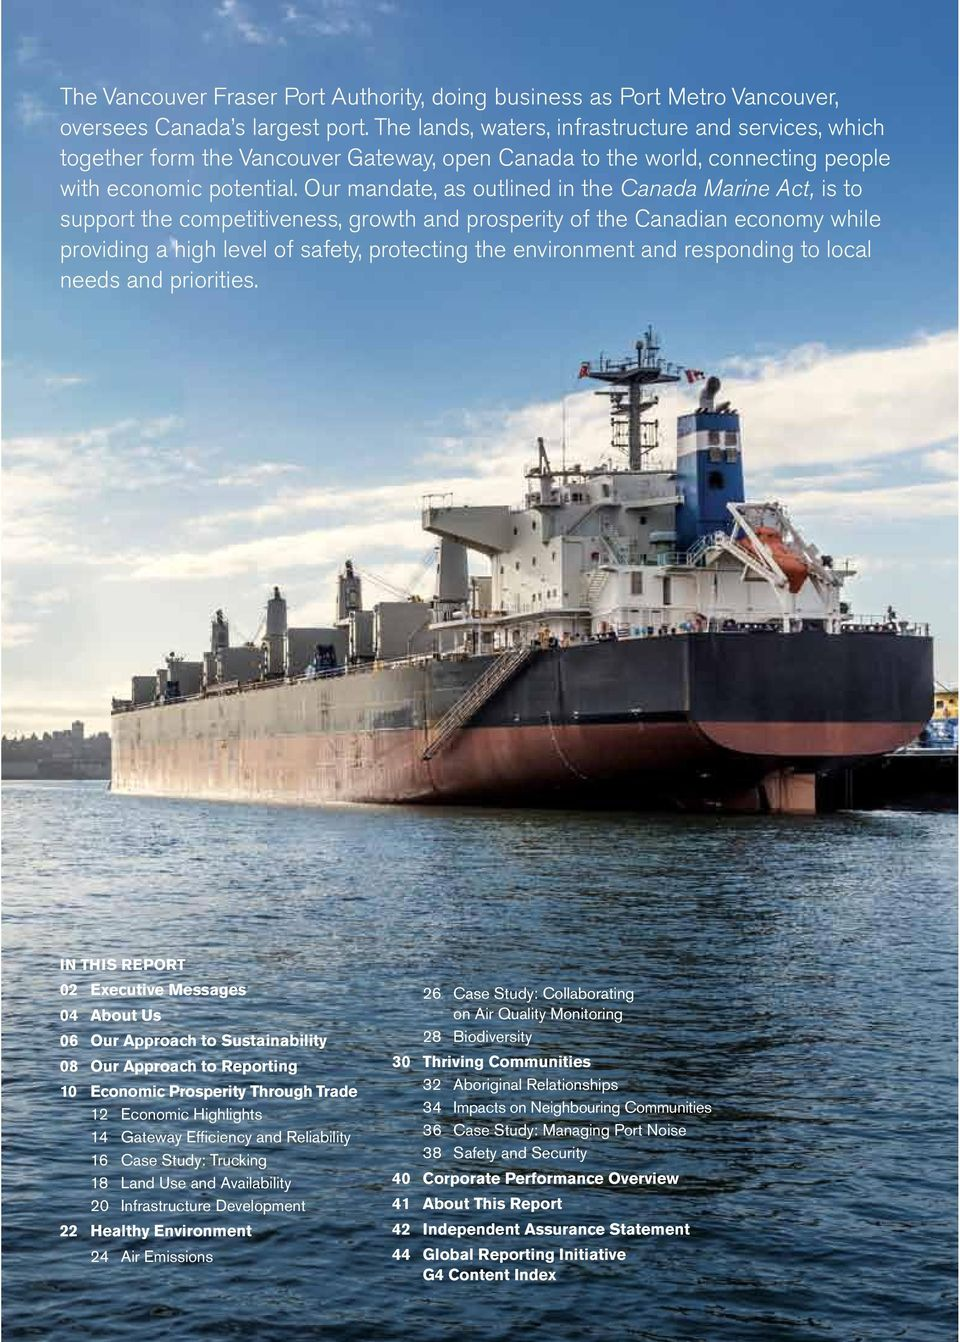 Our mandate, as outlined in the Canada Marine Act, is to support the competitiveness, growth and prosperity of the Canadian economy while providing a high level of safety, protecting the environment